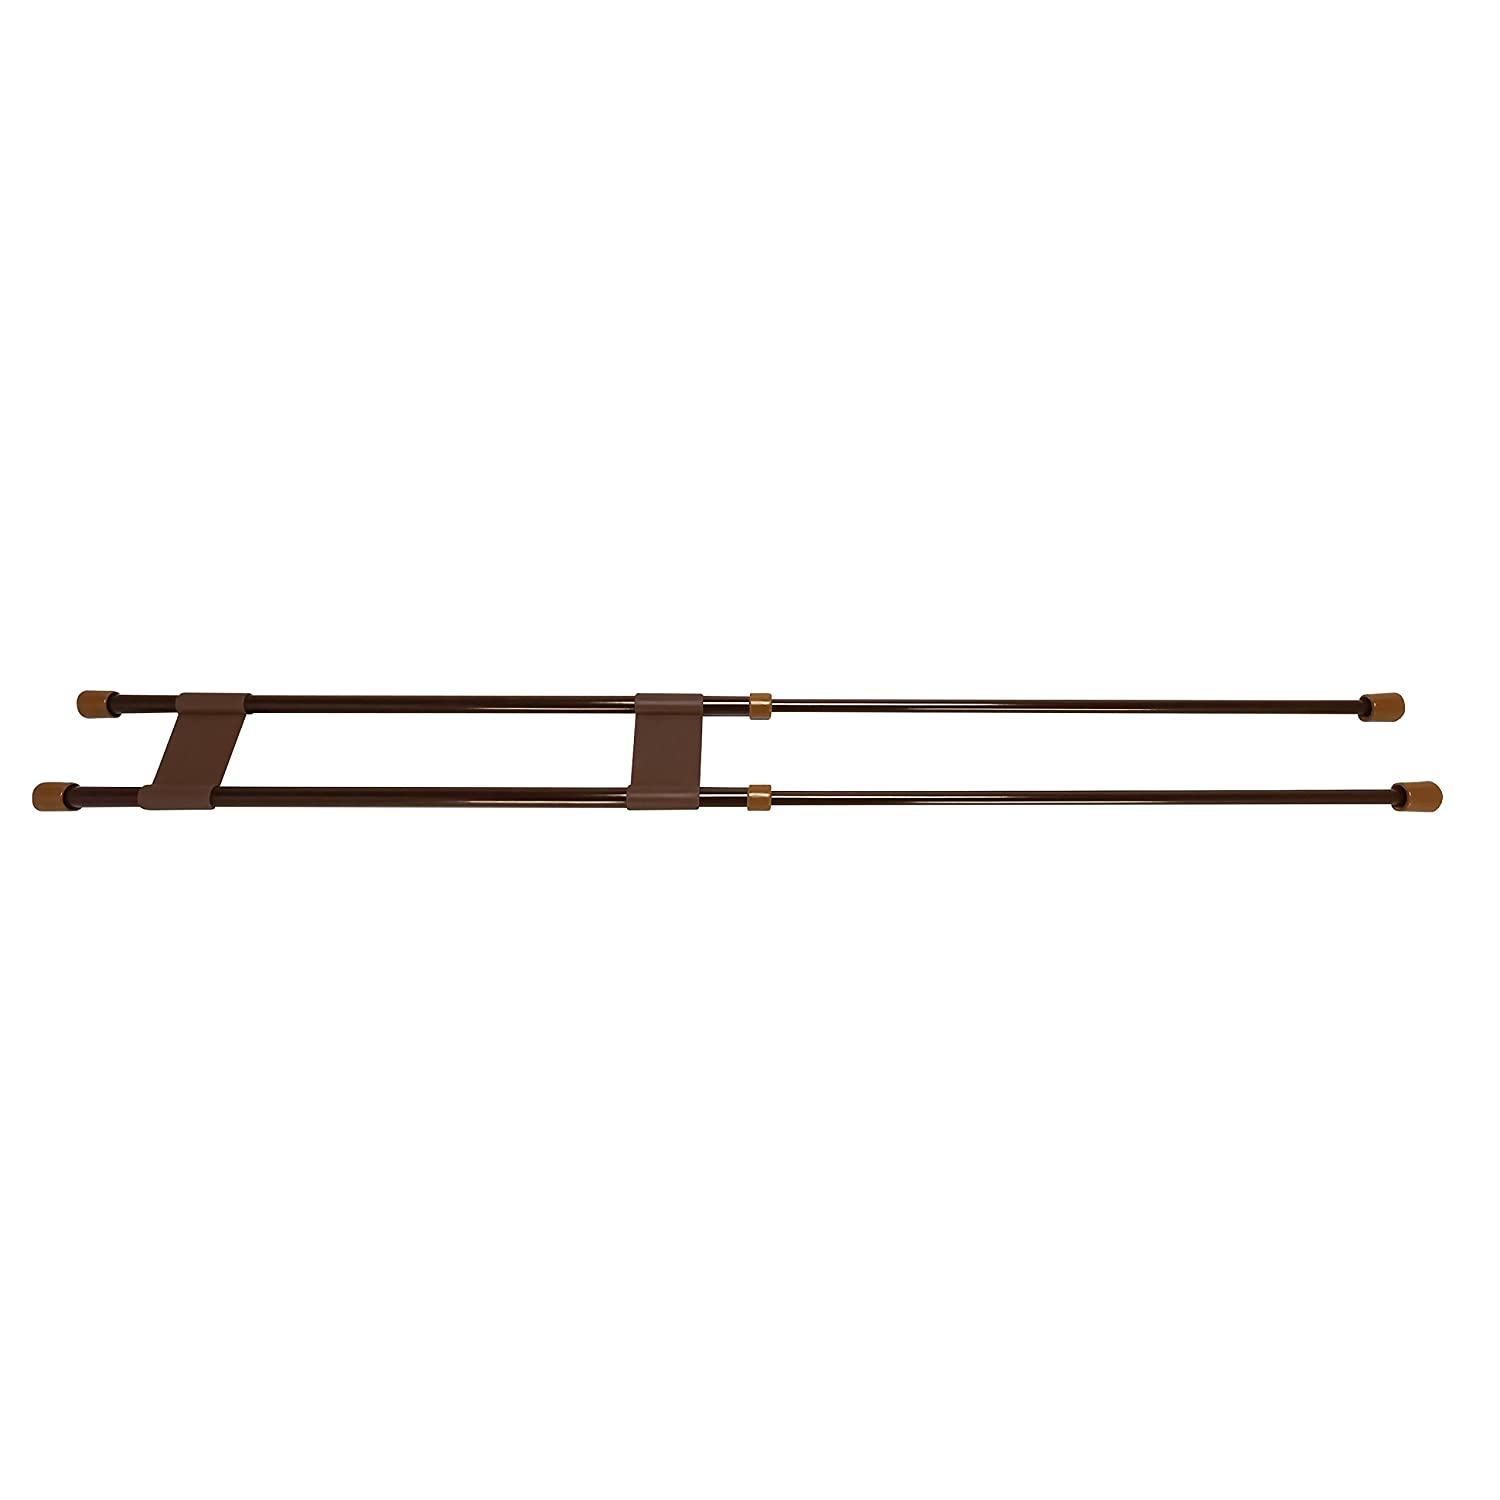 "Camco 34"" Double RV Refrigerator Bar, Holds Food and Drinks in Place During Travel, Prevents Messy Spills, Spring Loaded and Extends Between 19"" and 34"" - Brown ( 44078)"